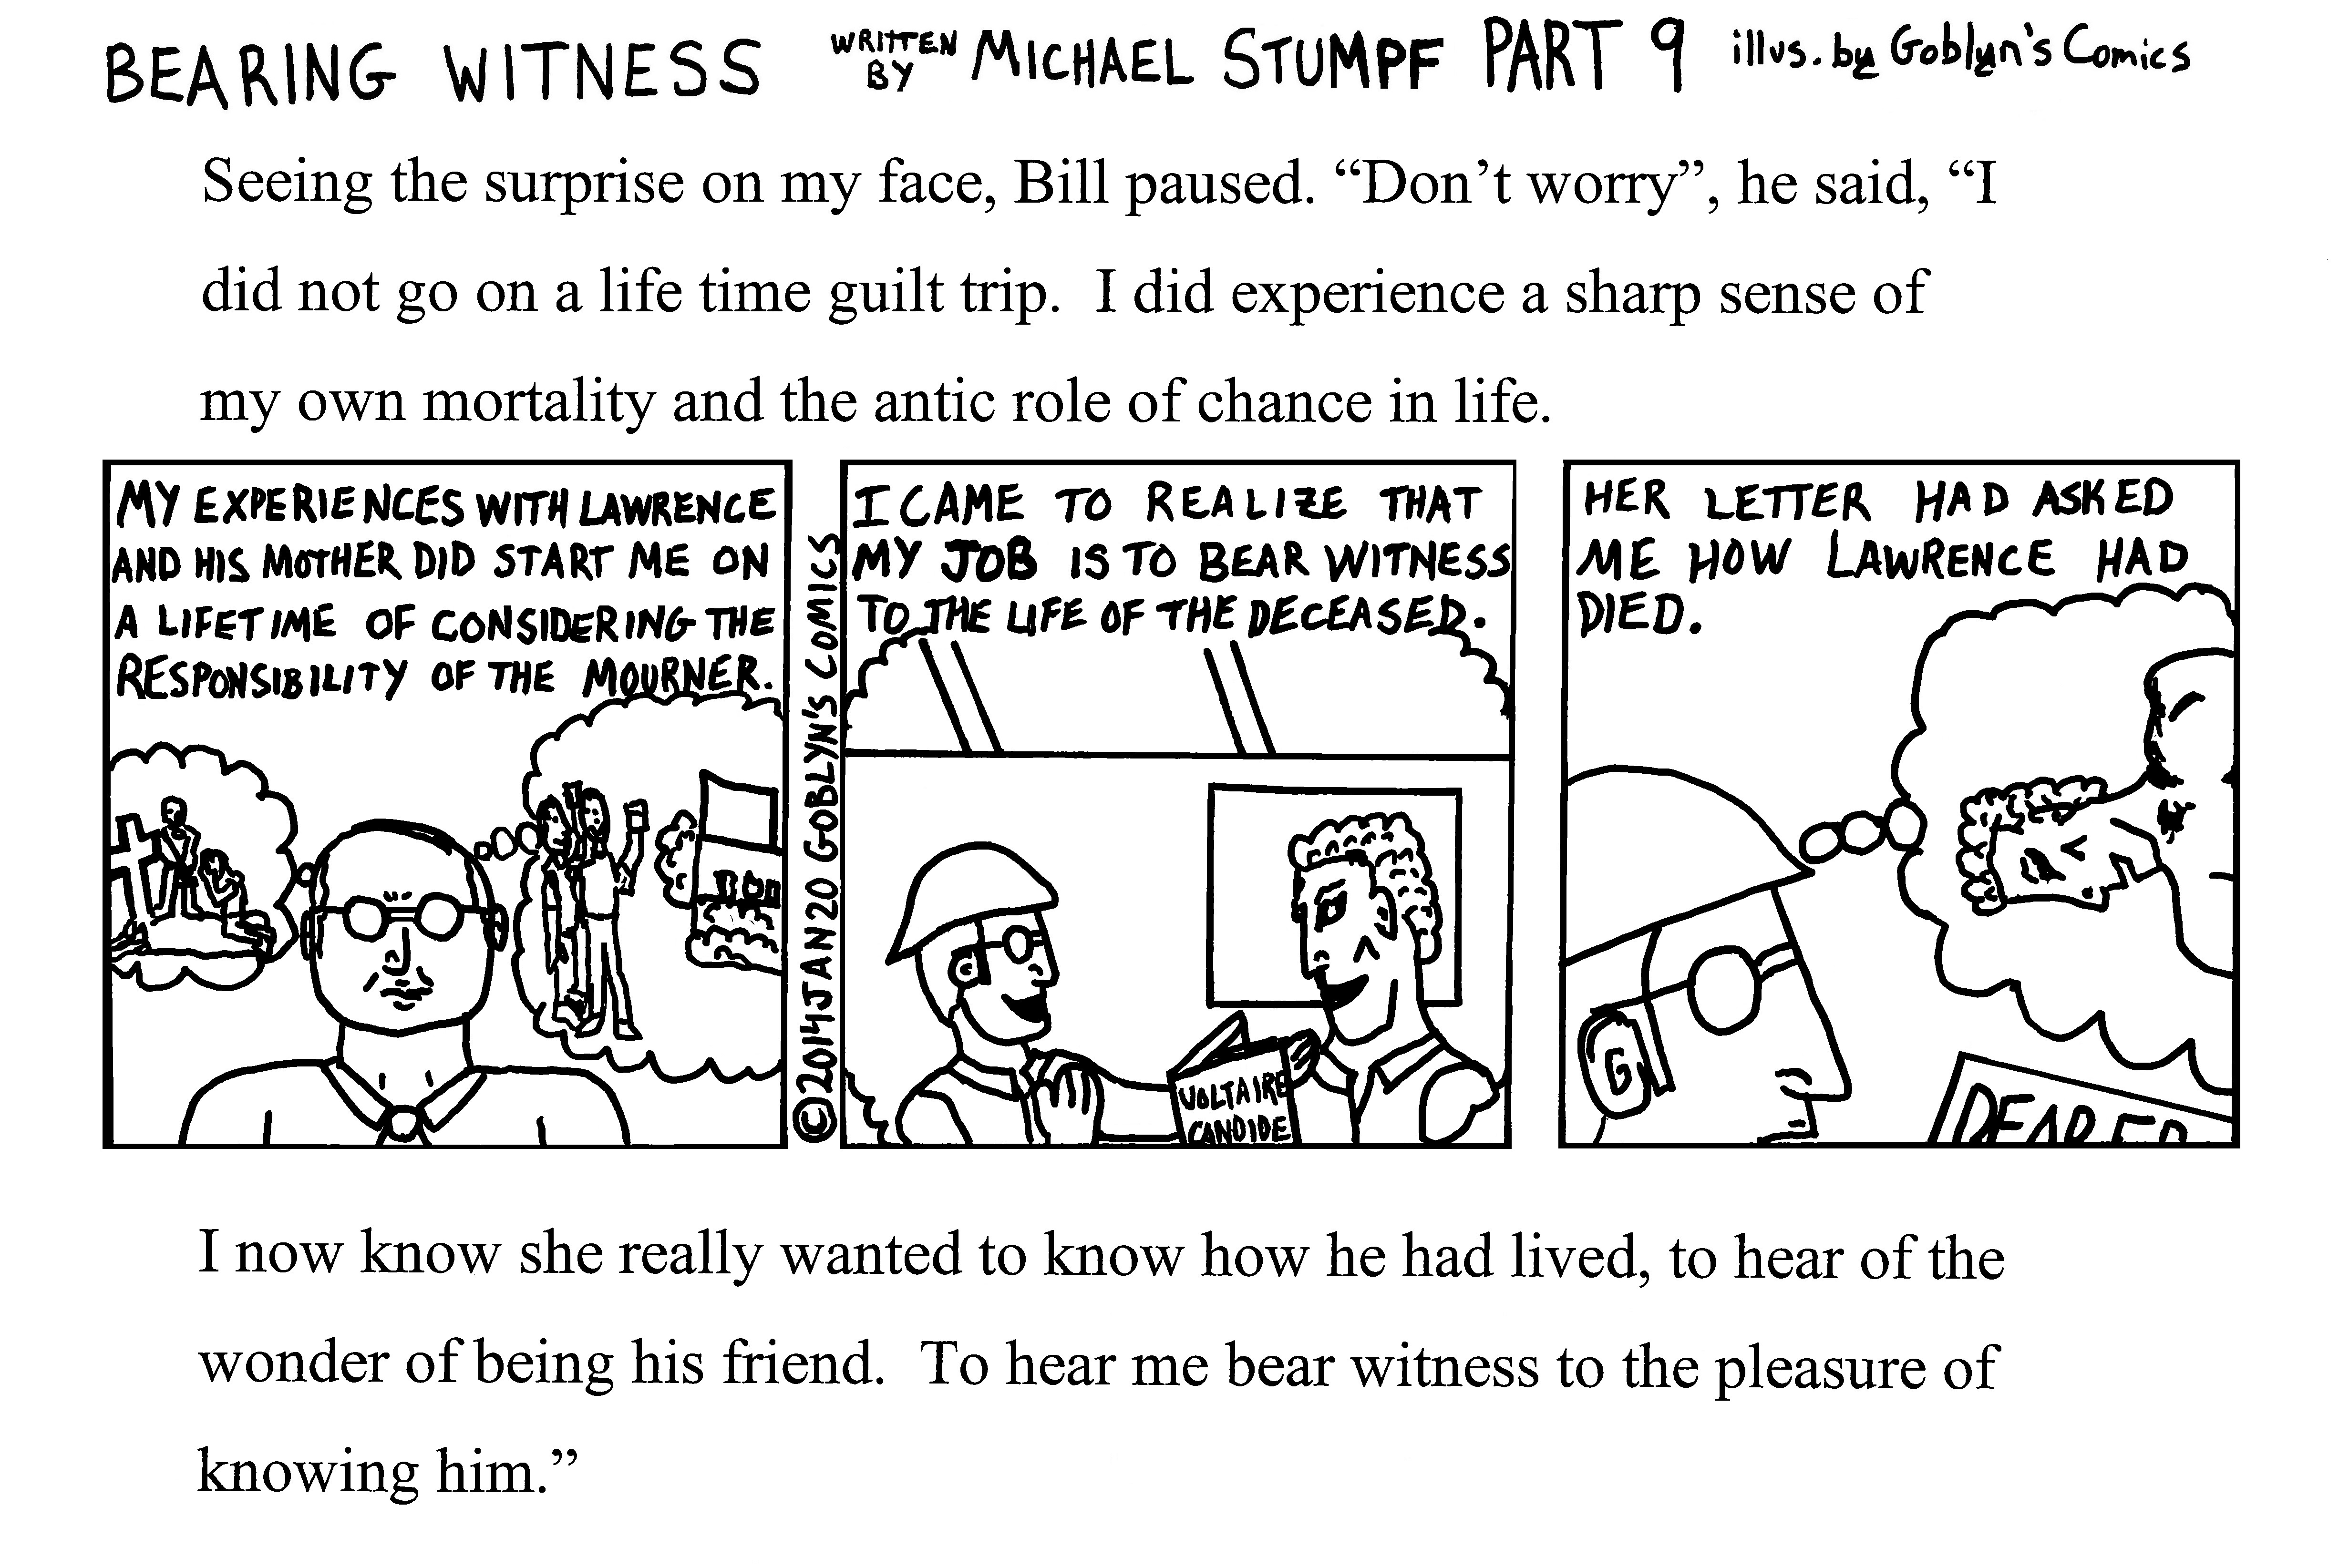 Bearing Witness Part 9 Written by Michael Stumpf, Illustrated by Goblyn's Comics